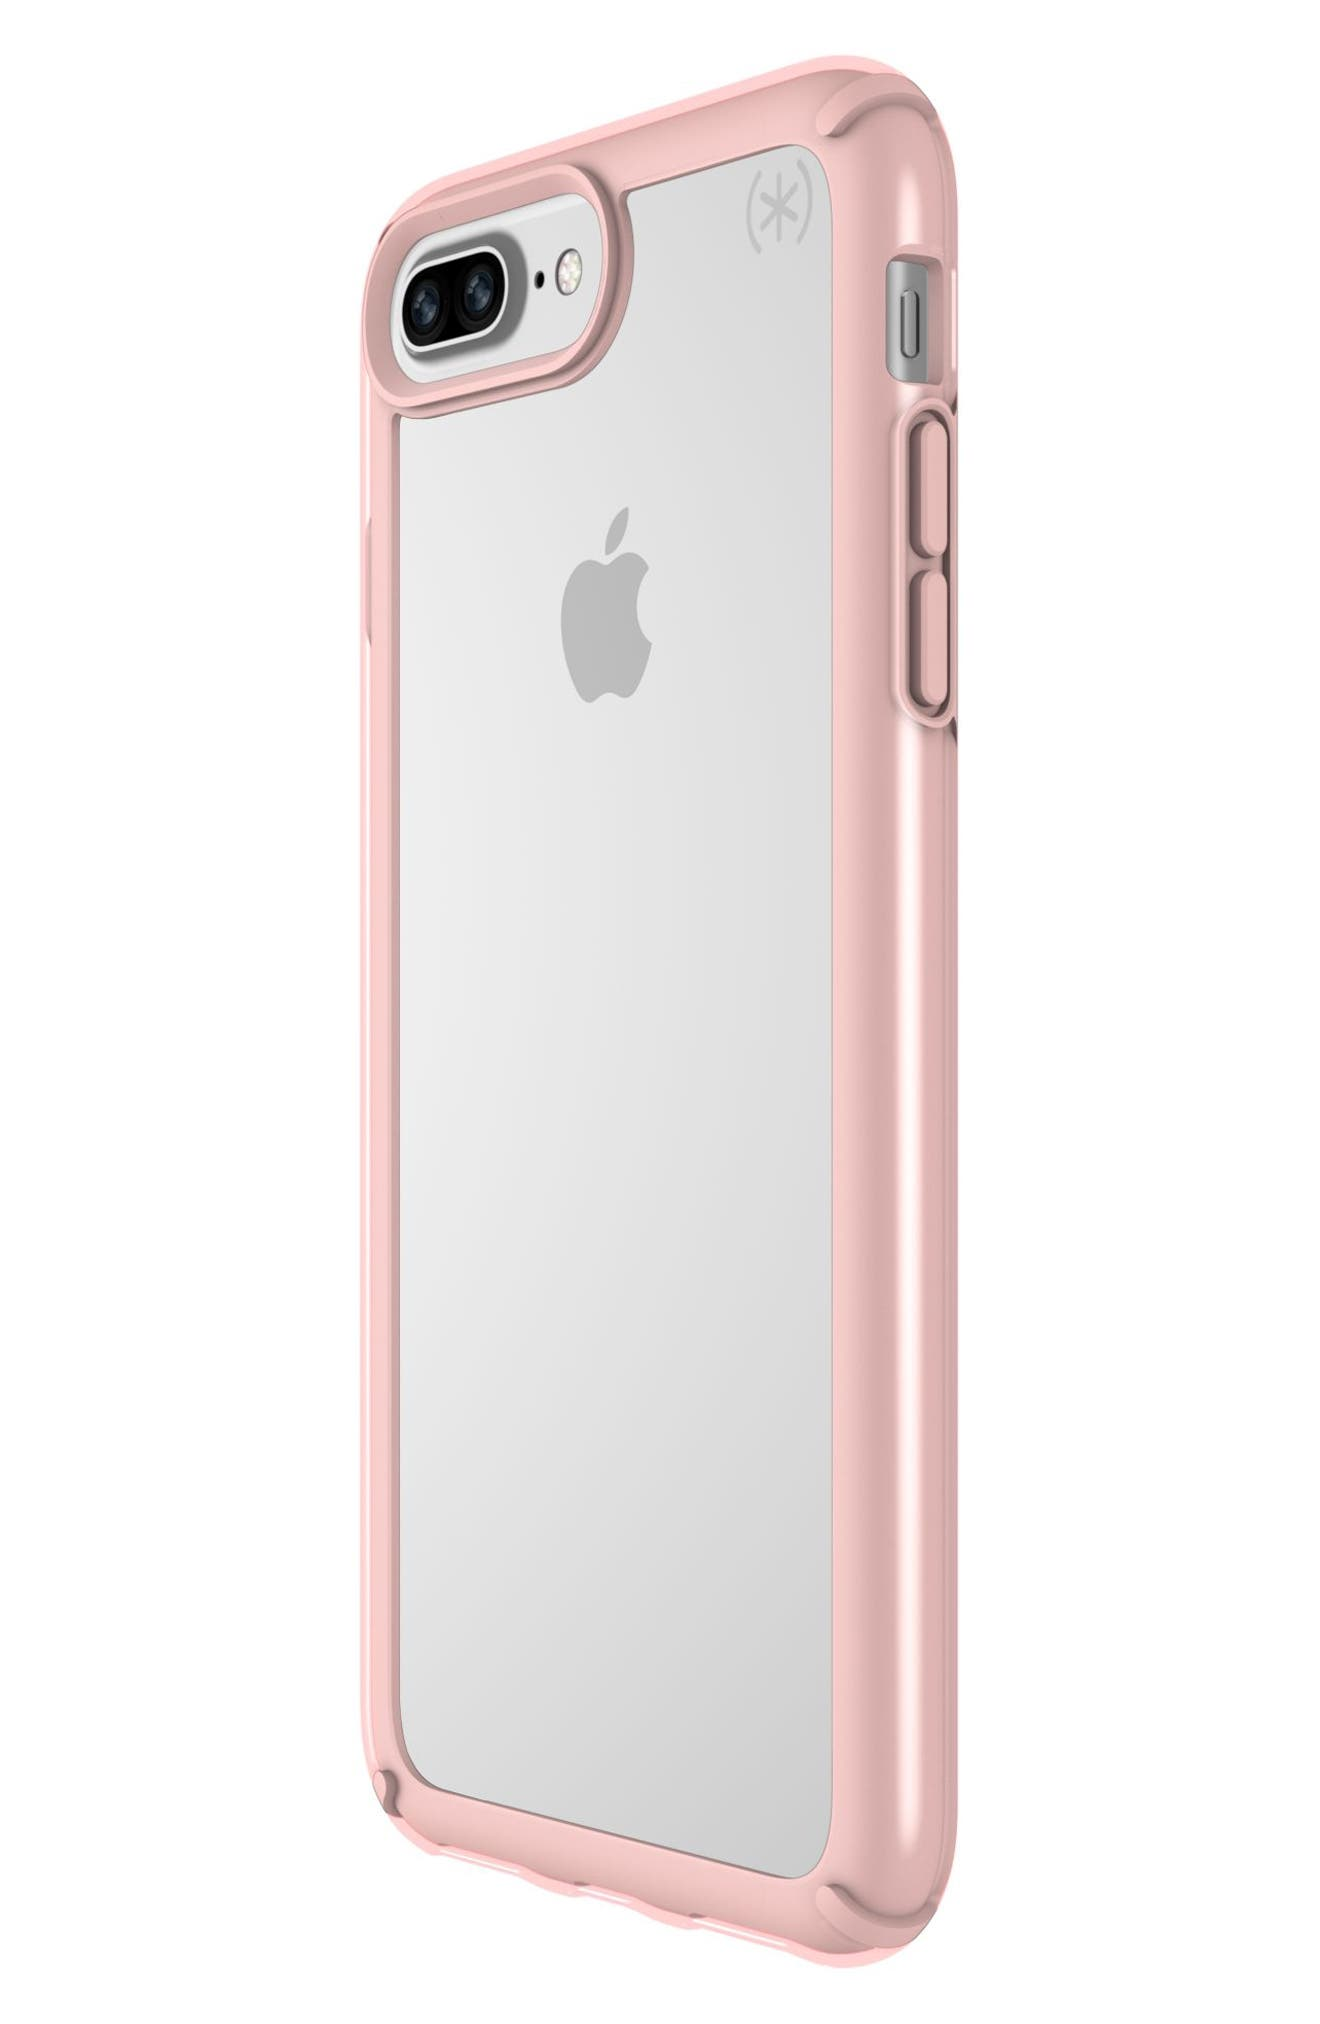 iPhone 6/6s/7/8 Plus Case,                             Alternate thumbnail 3, color,                             Clear/ Rose Gold